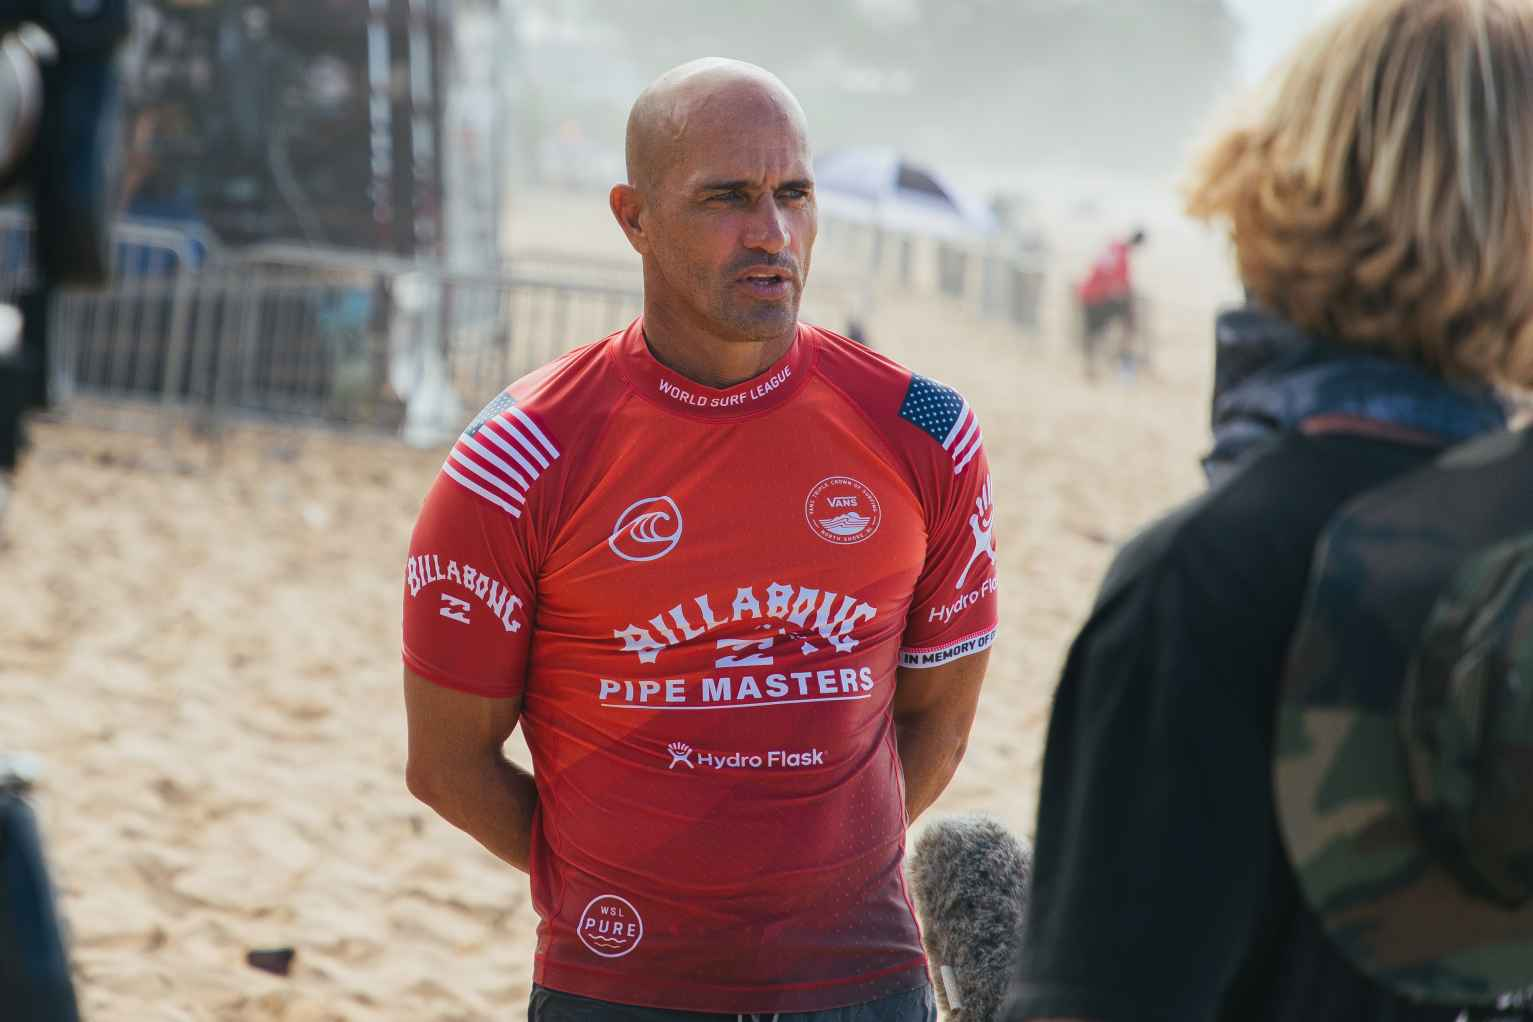 pipe masters Slater pipe20Heff4671